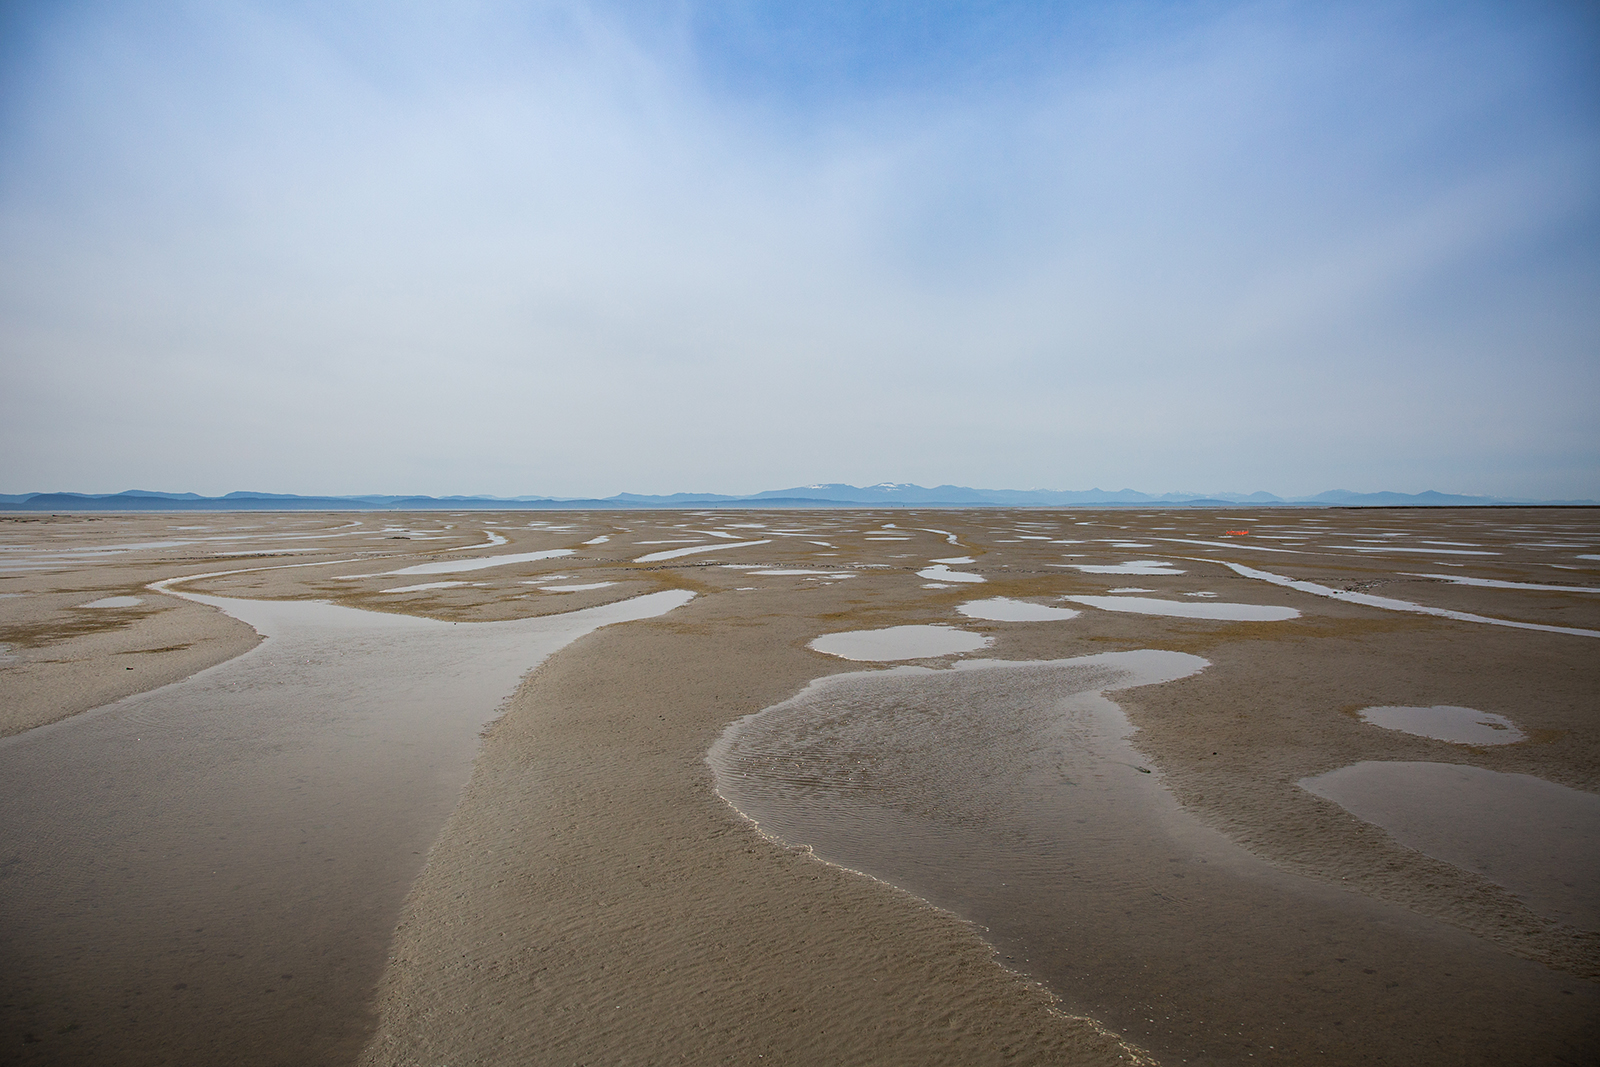 Tidal flats at Brunswick Point in Ladner, British Columbia